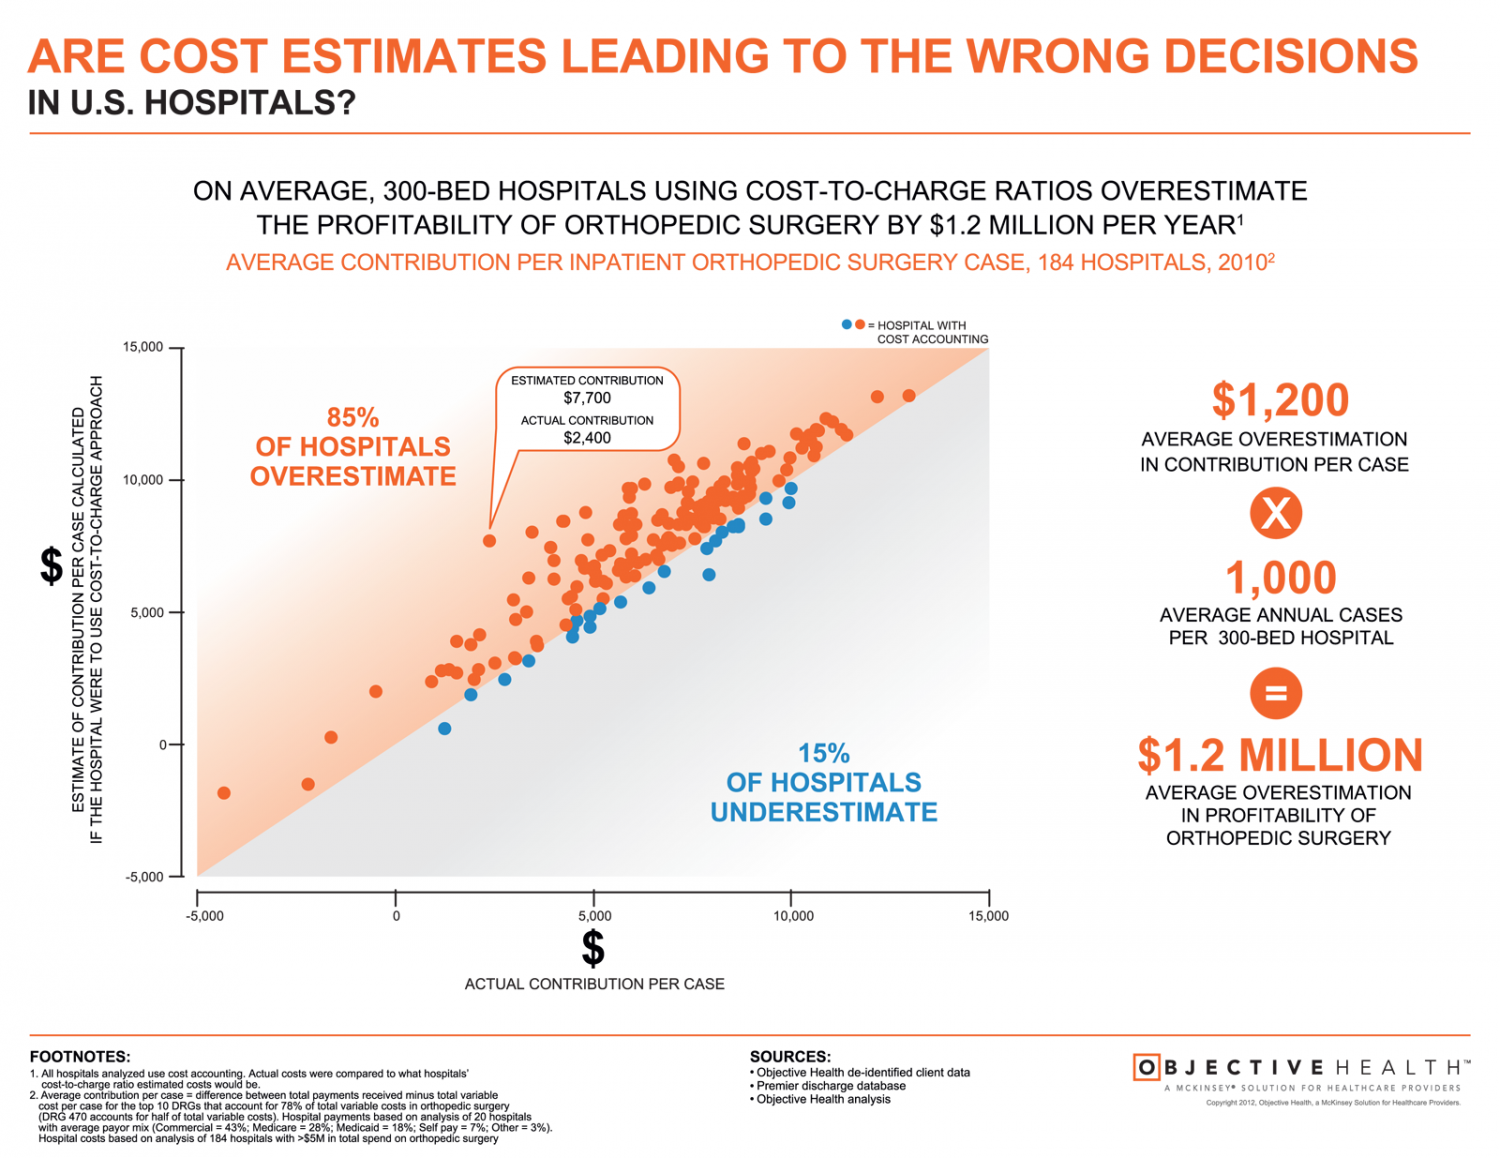 US Hospital Cost Estimating Can Lead to Bad Decision Making Infographic